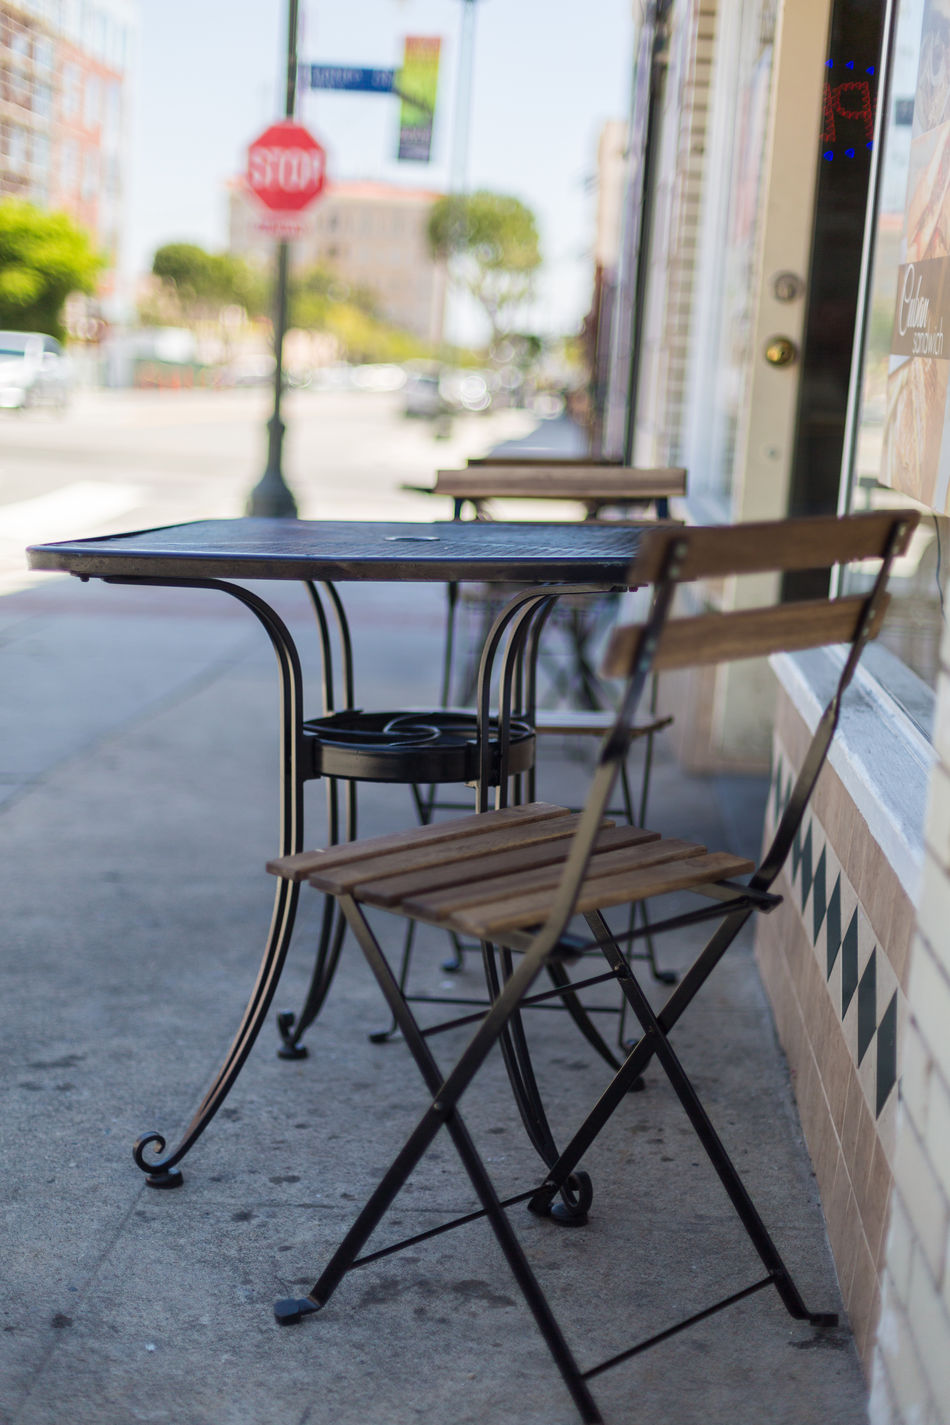 cafe tables and chairs Architecture Building Building Exterior Cafe Cafe Entrance Chairs City Close-up Day Focus On Foreground Metal Tables Morning No People Outdoors Patio Roads Shade Shaded Shallow Depth Of Field Stop Sign Street Tables Town Urban Windows